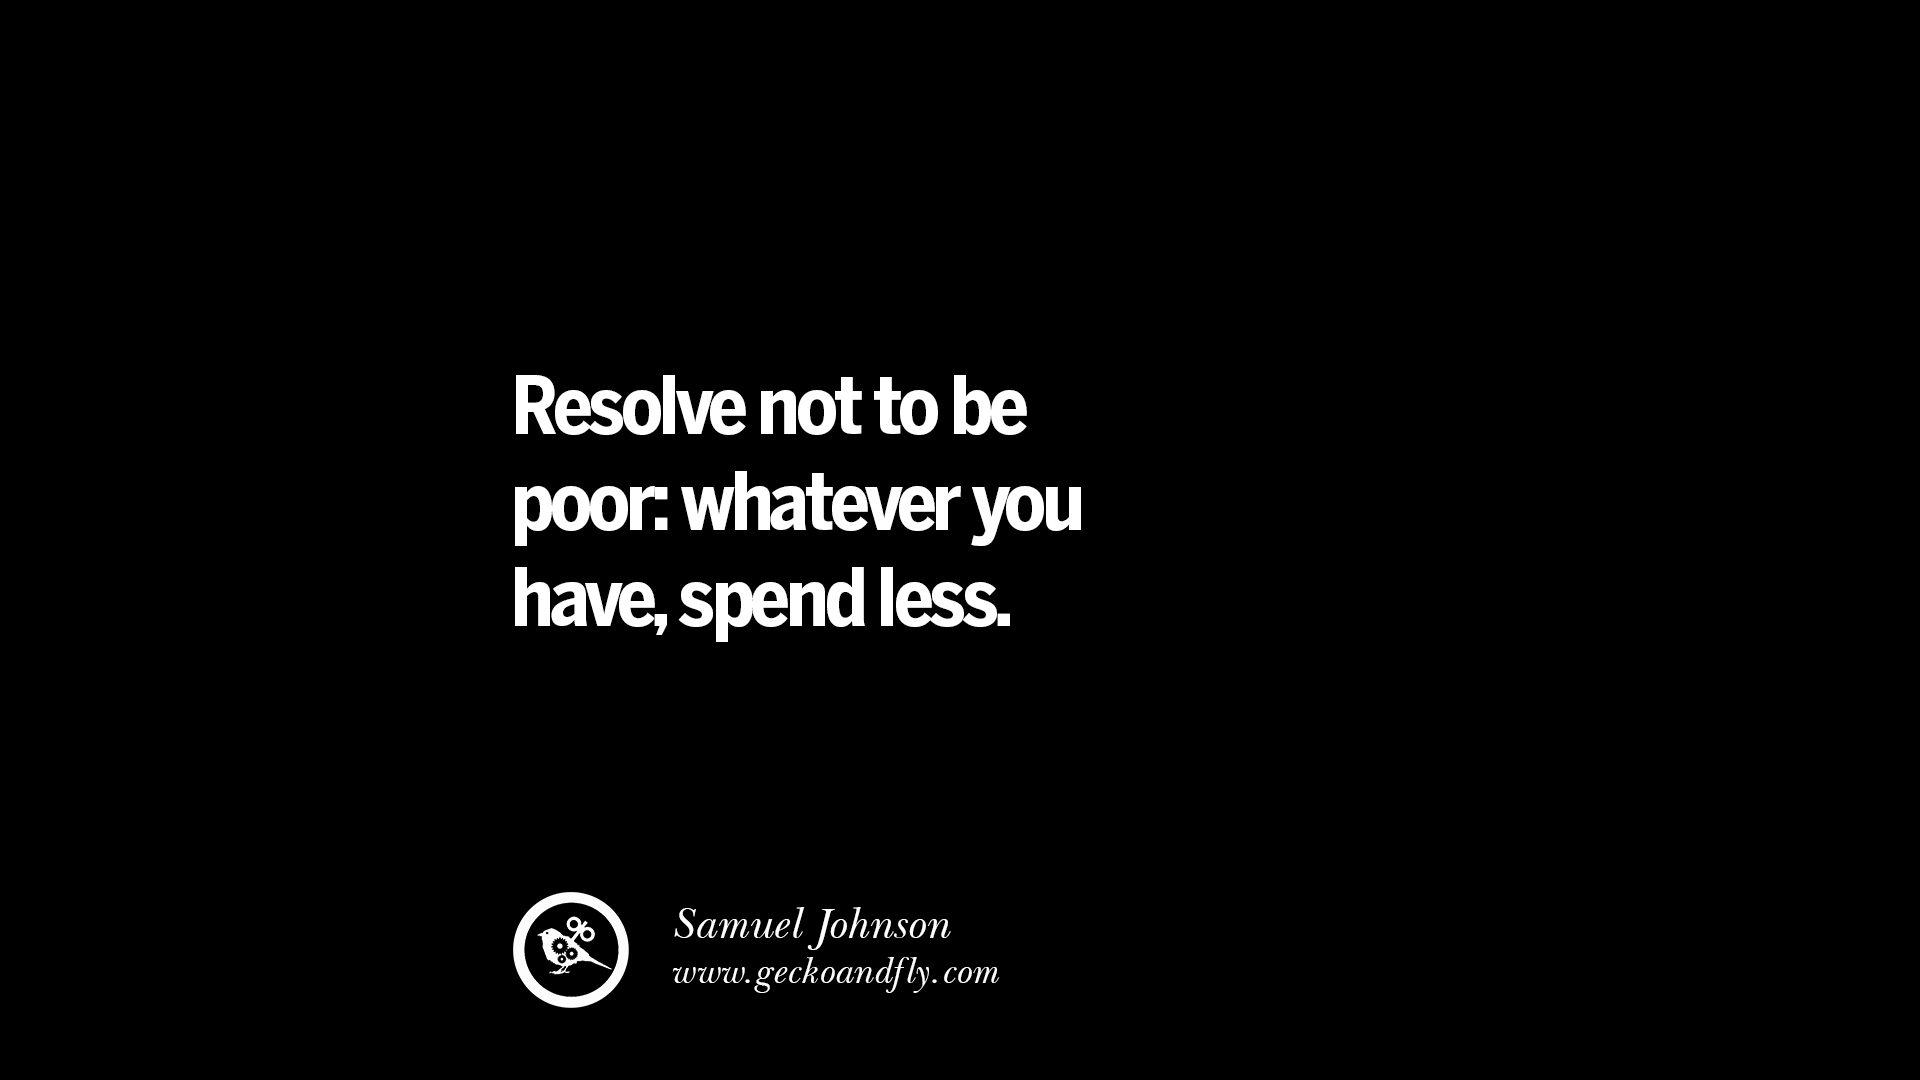 Get Money Quotes Pleasing 10 Golden Rules On Money & 20 Inspiring Quotes About Money